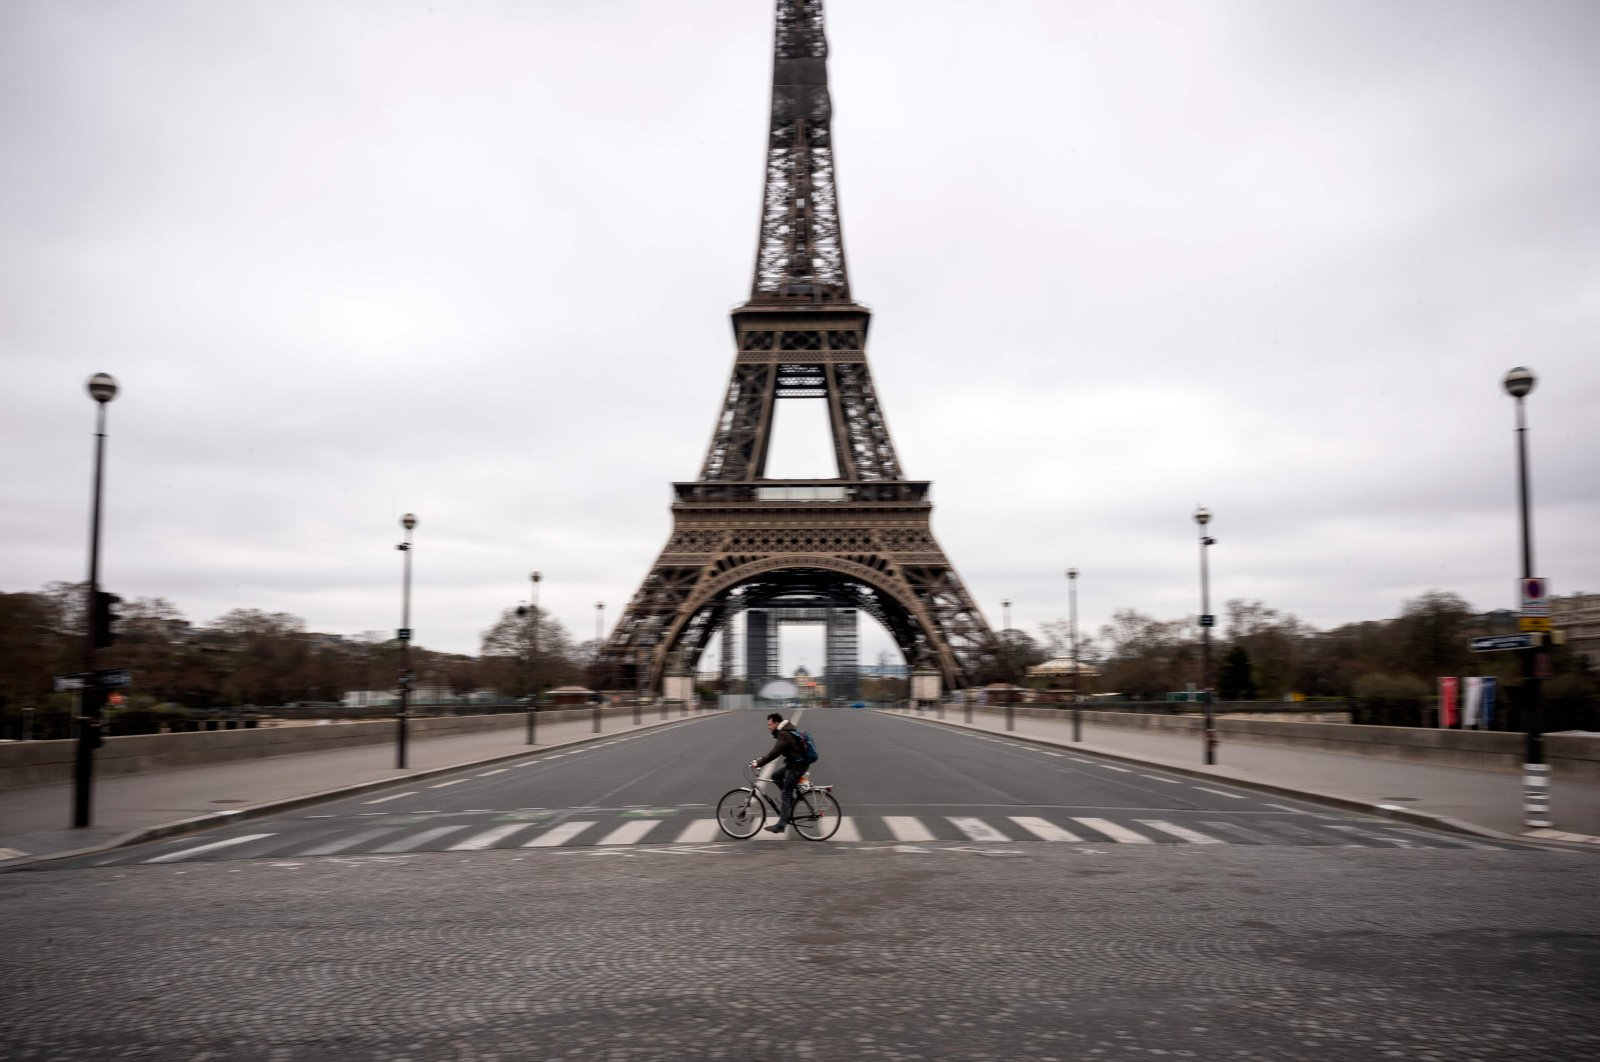 A man rides his bike on empty streets facing the Eiffel Tower, Paris, Saturday, March 21, 2020. (AFP Photo)